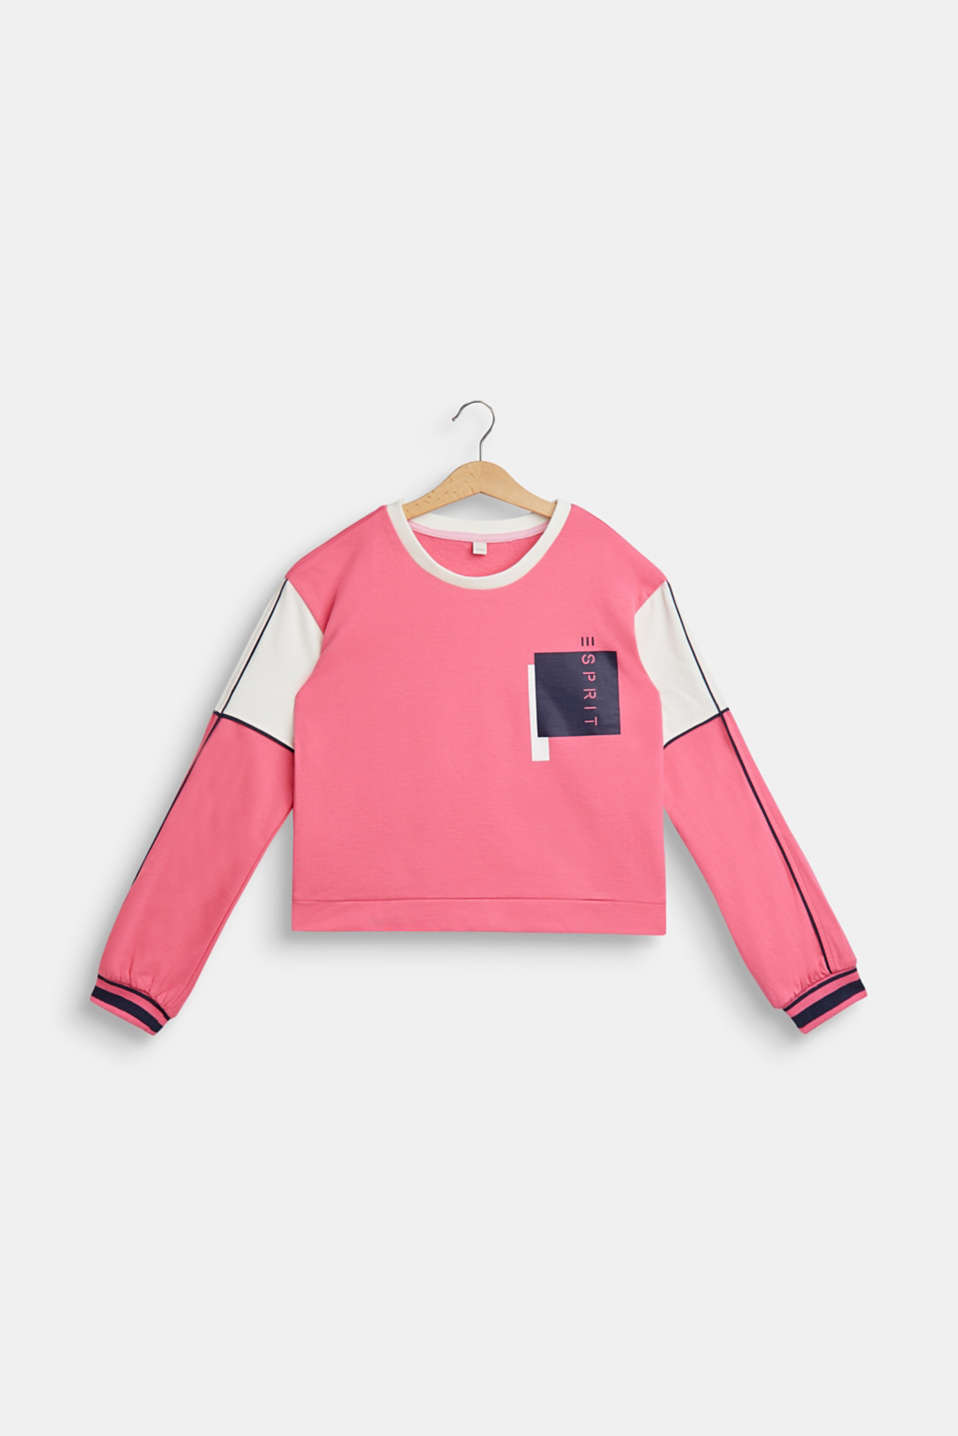 Esprit - Colour block sweatshirt, 100% cotton